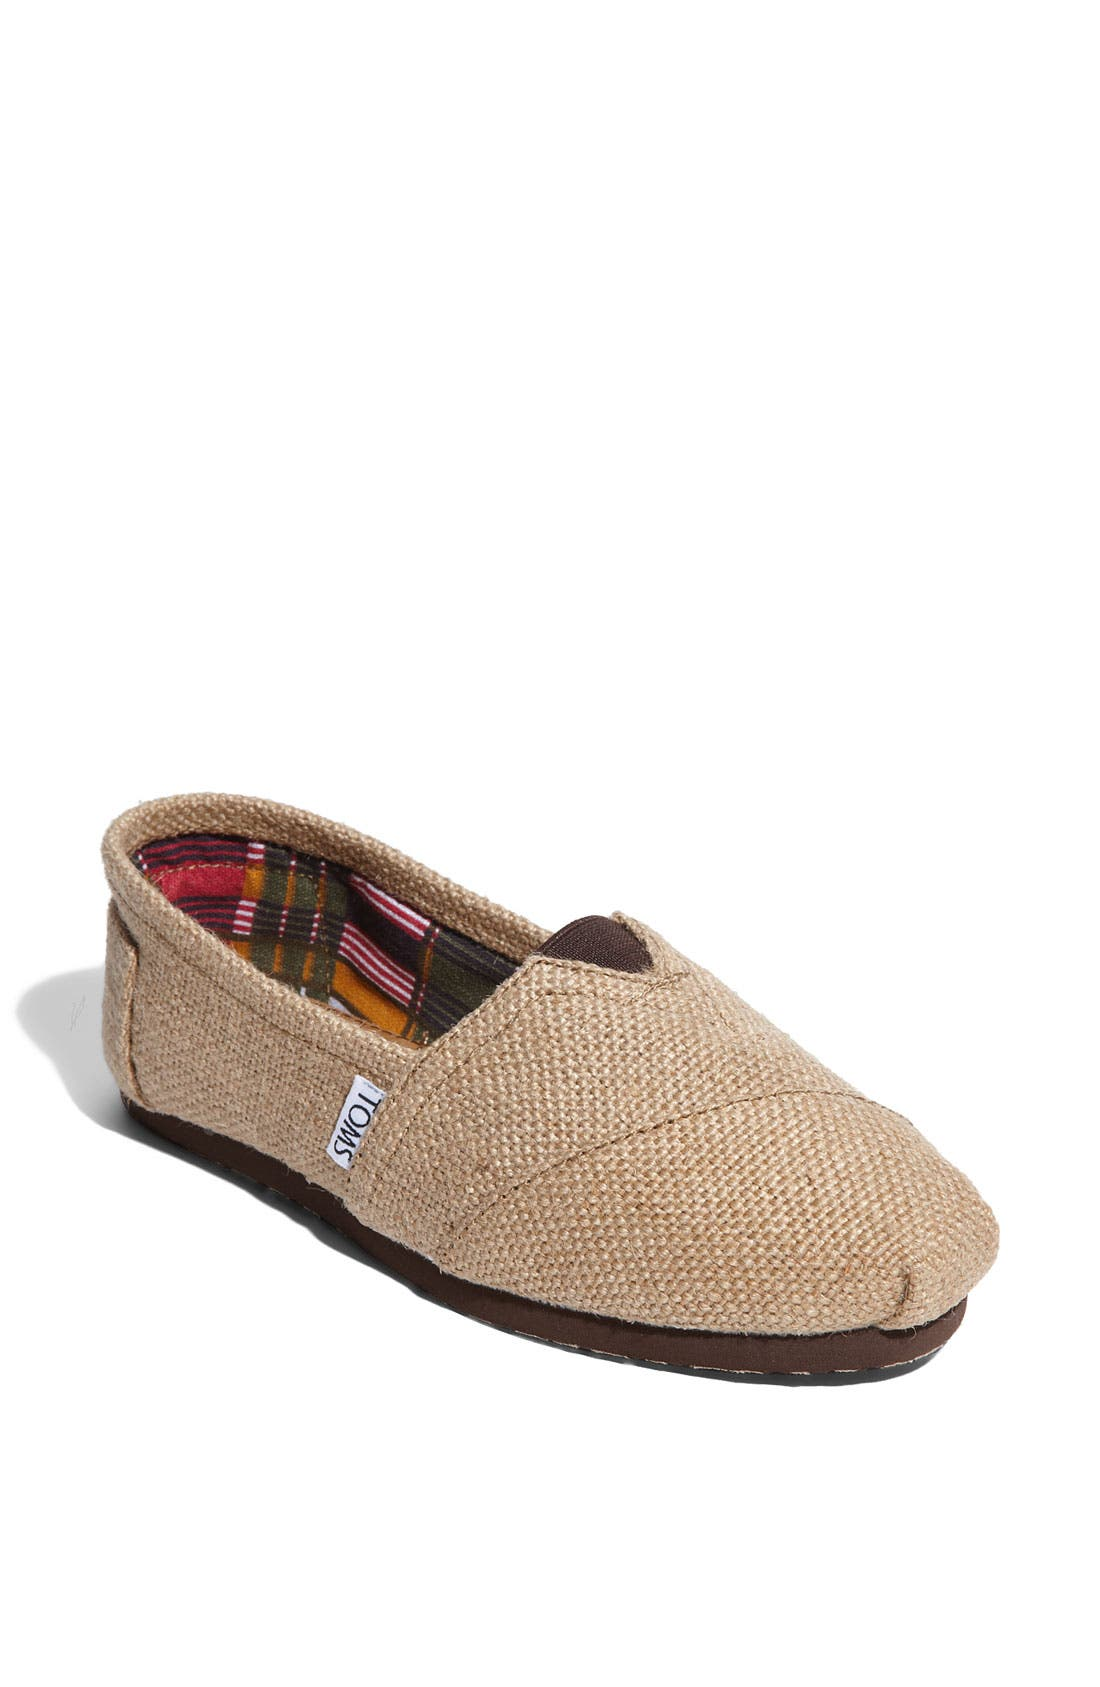 Alternate Image 1 Selected - TOMS Burlap Slip-On (Women)